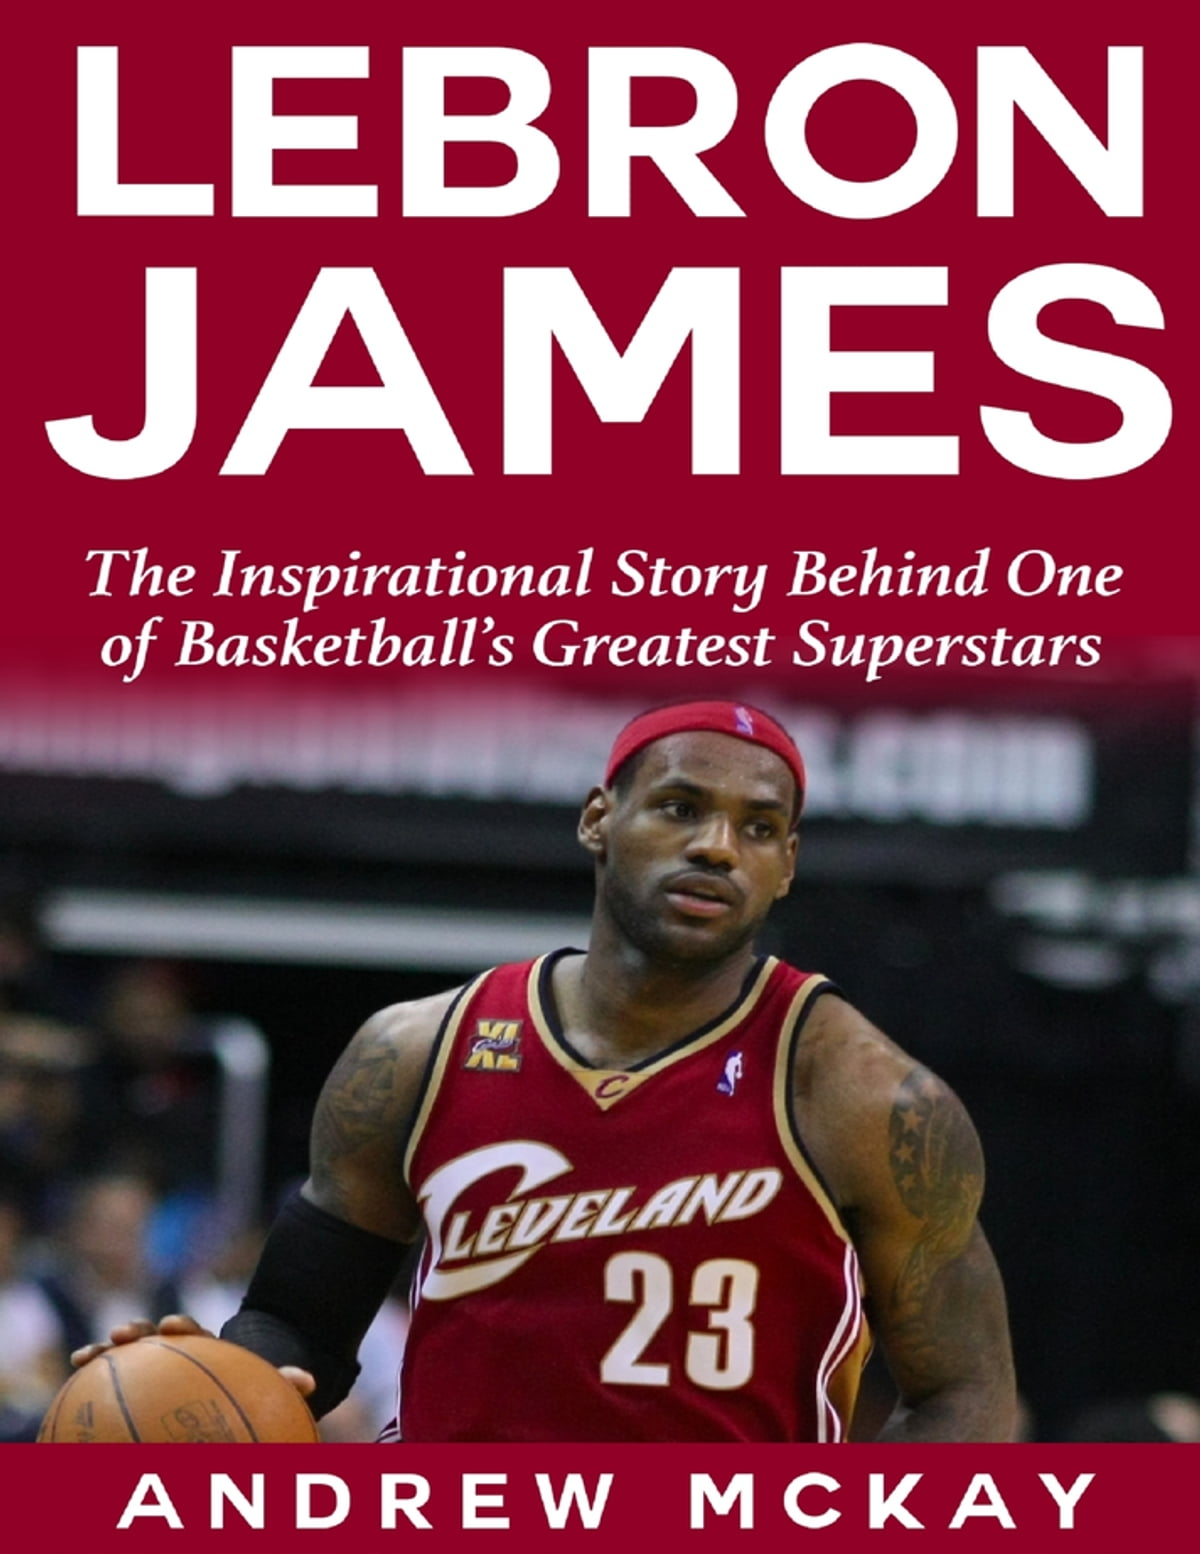 d22135f64bc30 Lebron James: The Inspirational Story Behind One of Basketball's Greatest  Superstars ebook by Andrew McKay - Rakuten Kobo